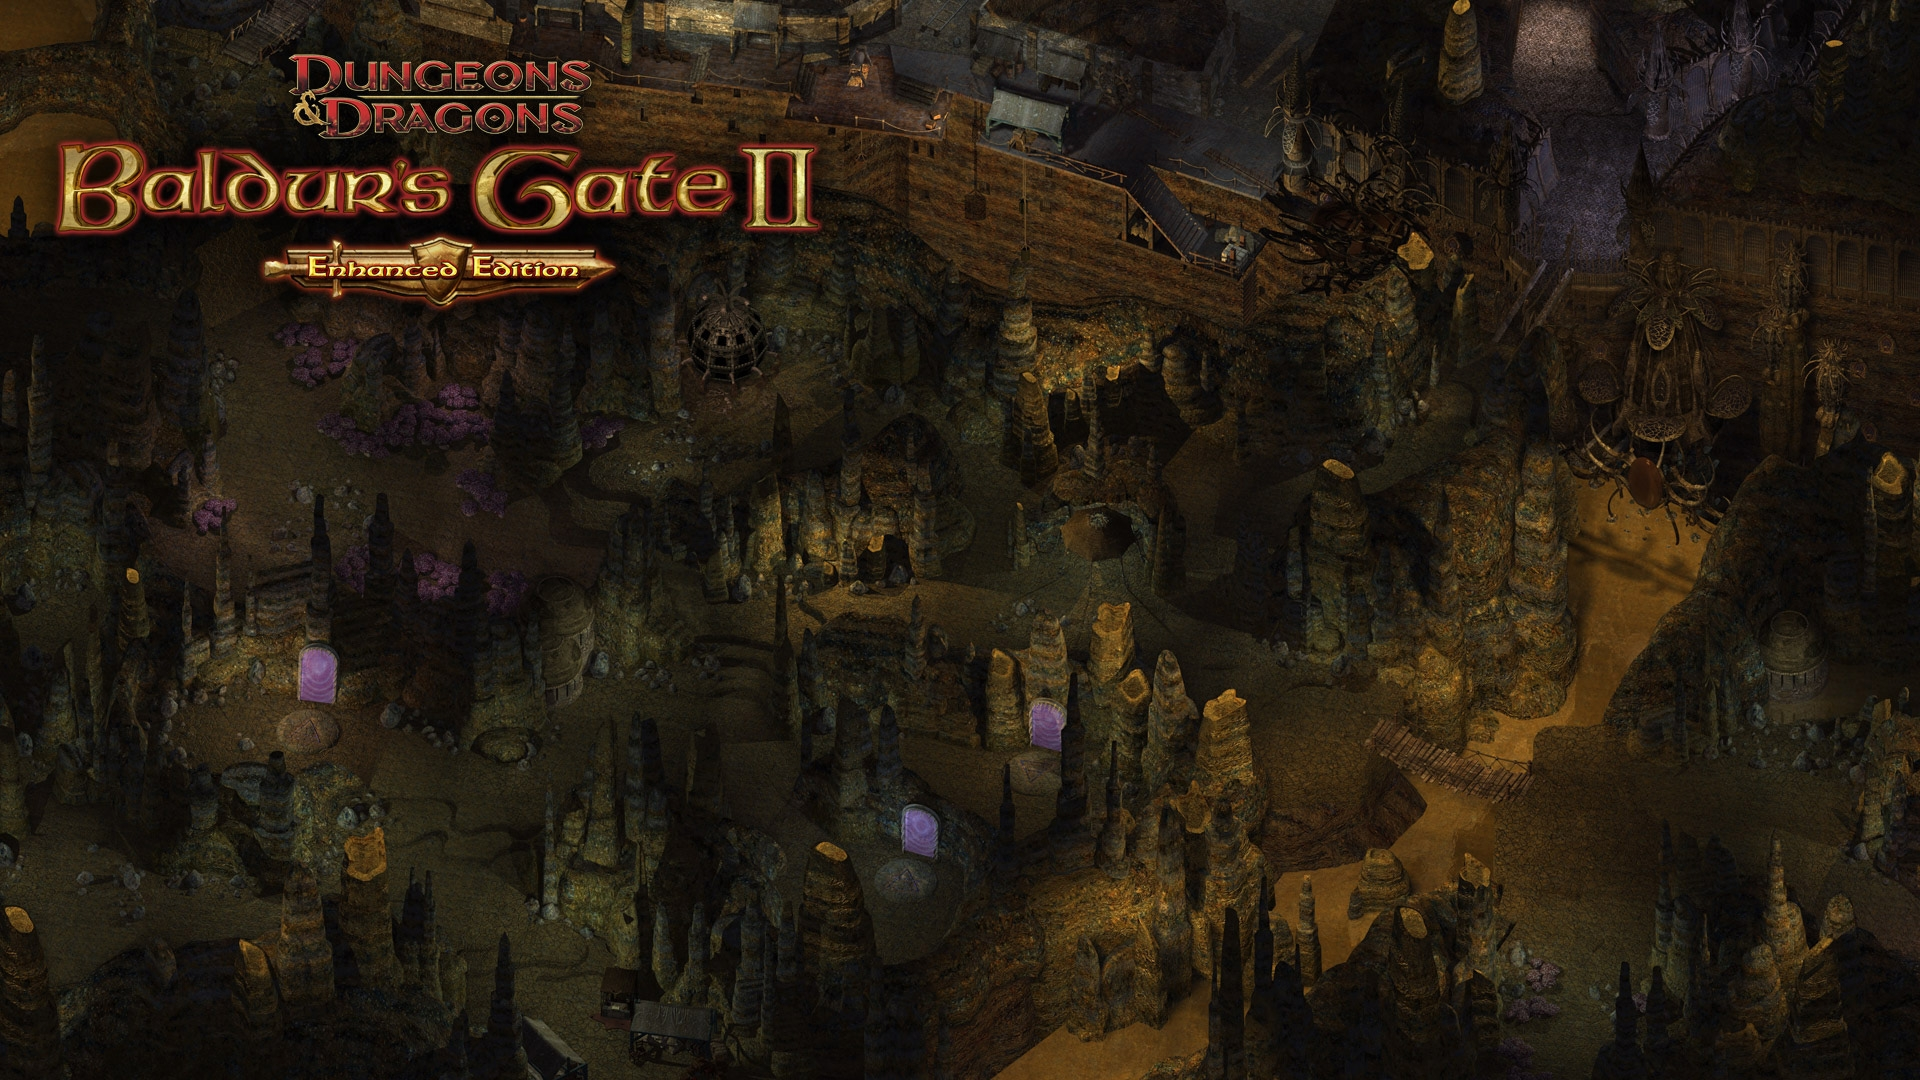 Baldurs Gate Wallpapers, Pictures, Images